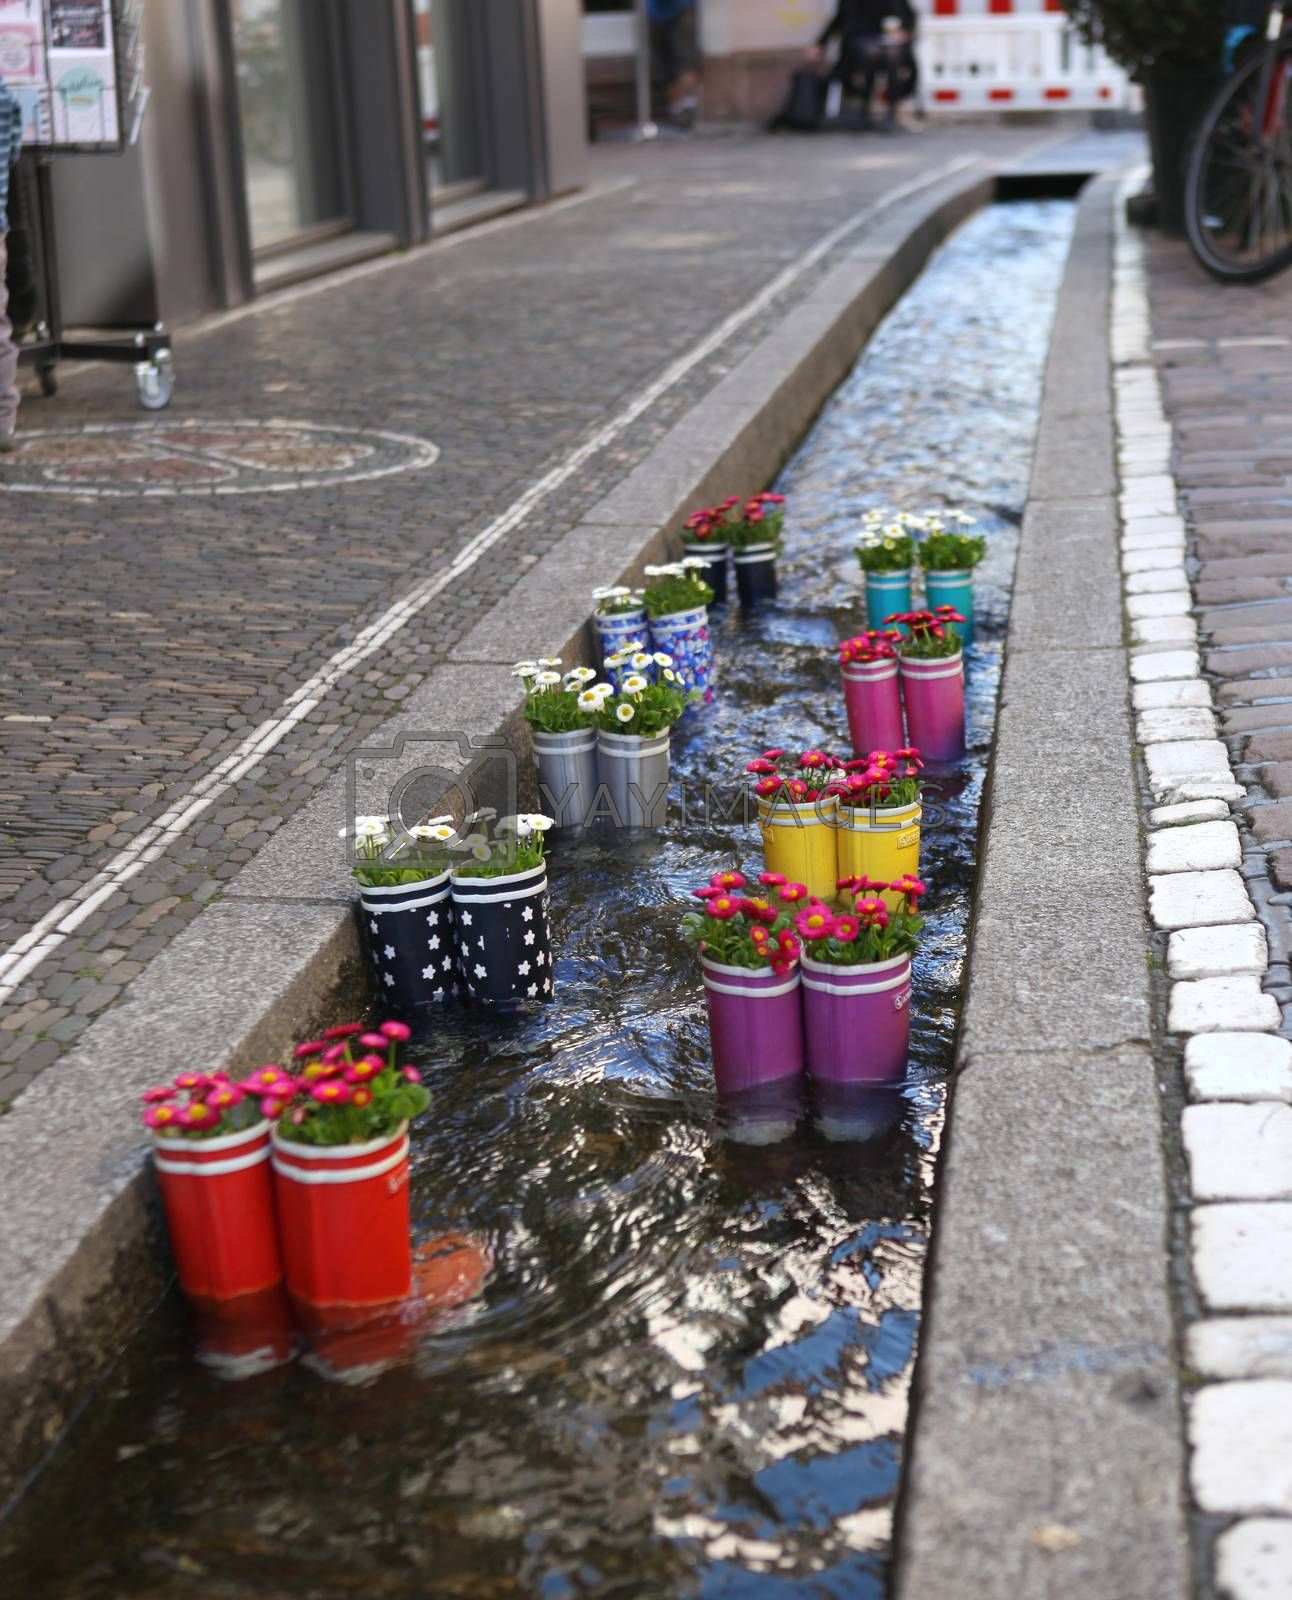 Rubber boots in the water with flowers in the city of Freiburg. Tourist attraction in the city center